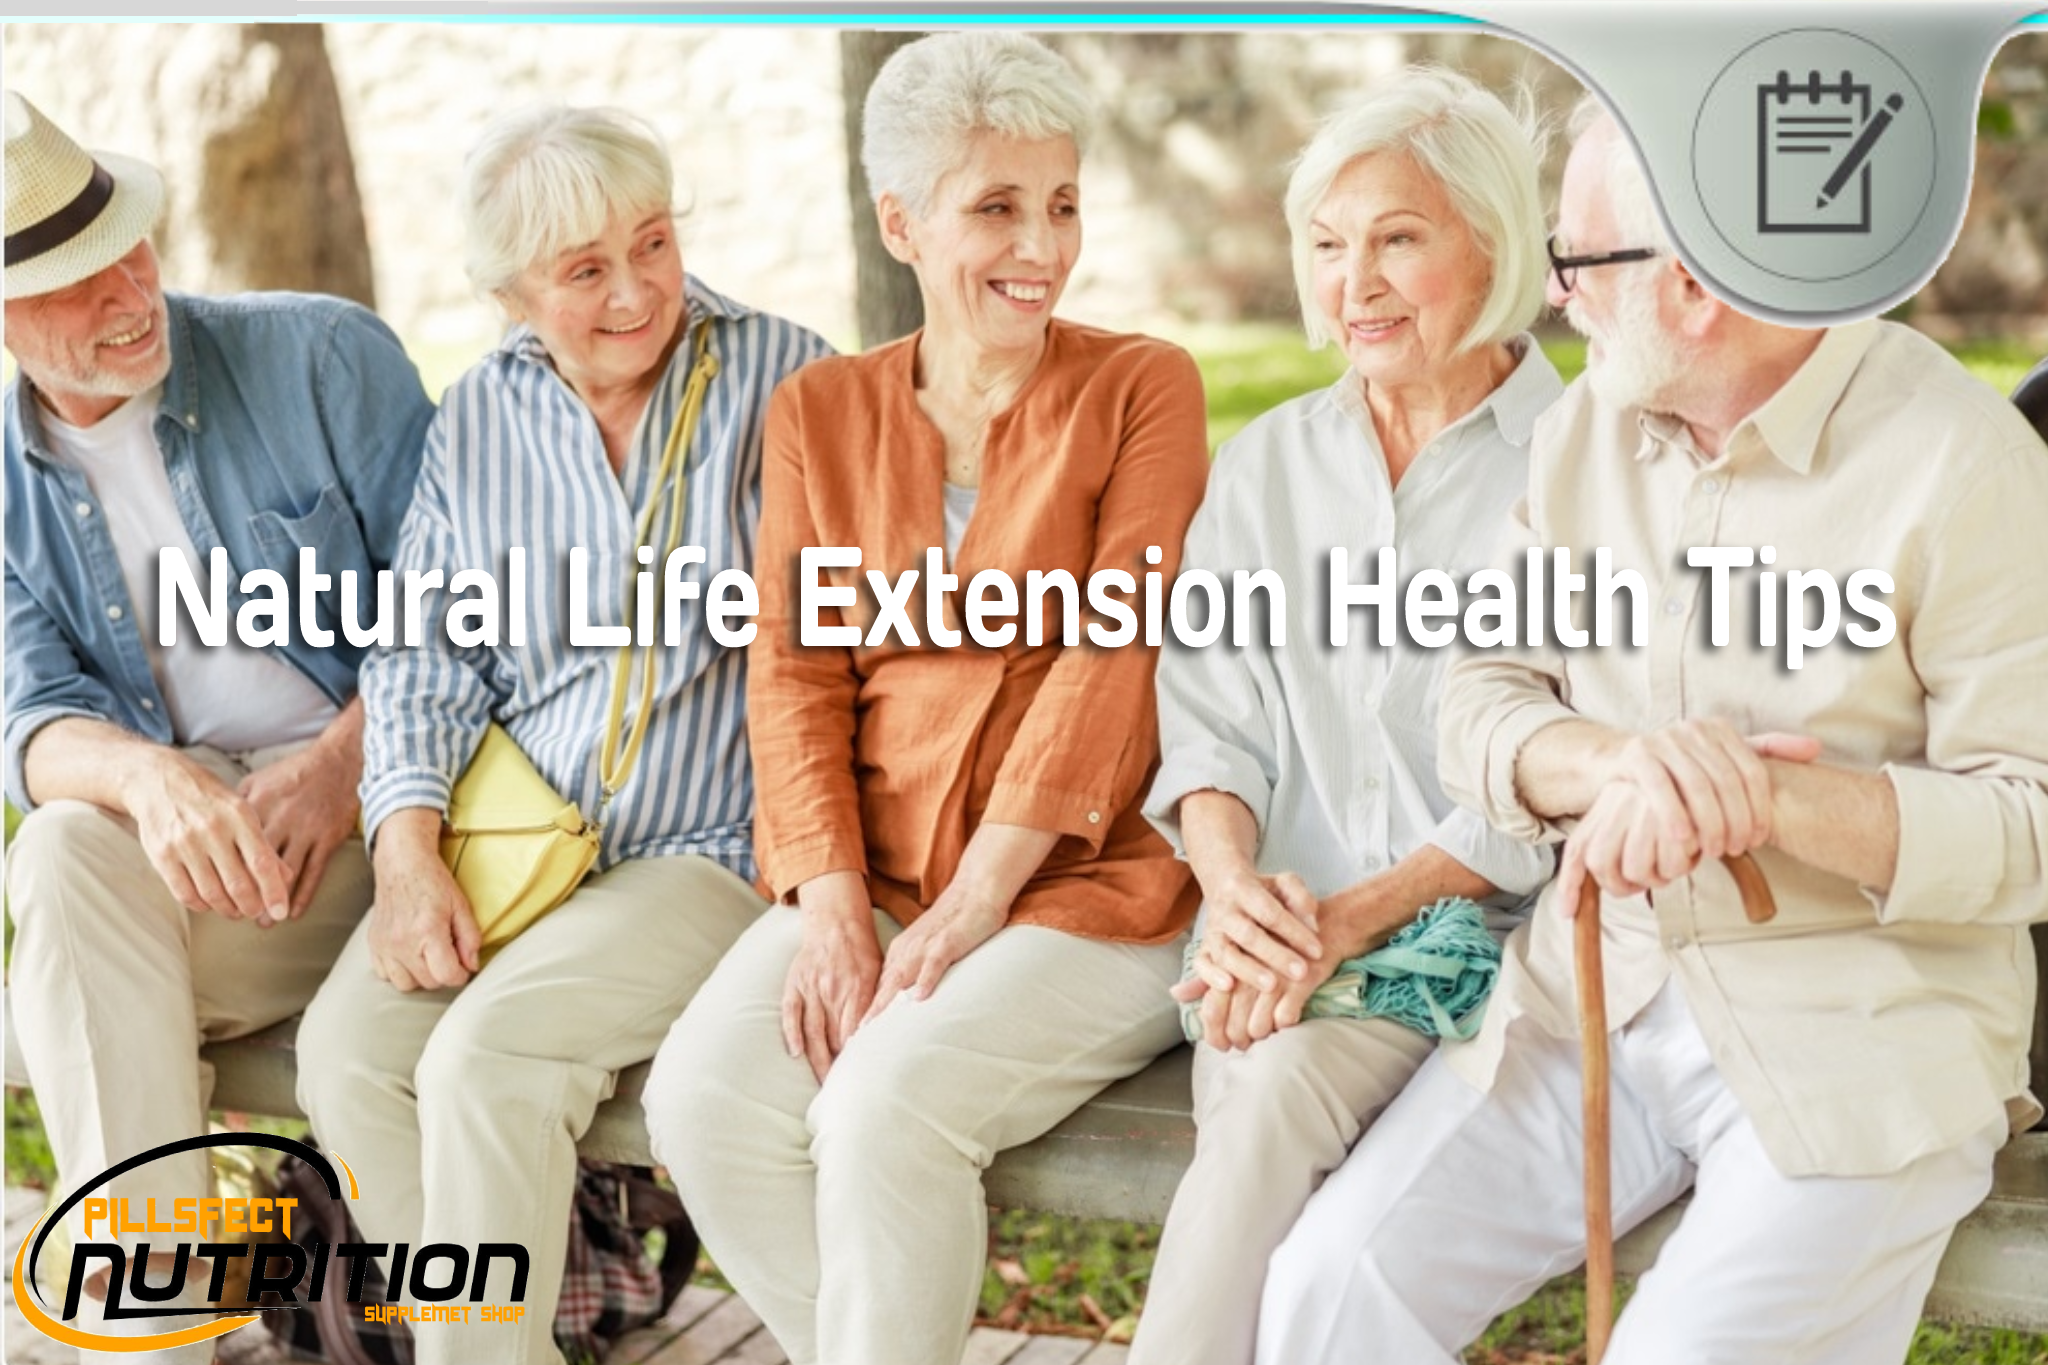 Natural Life Extension Health Tips - Everything You Need to Know..